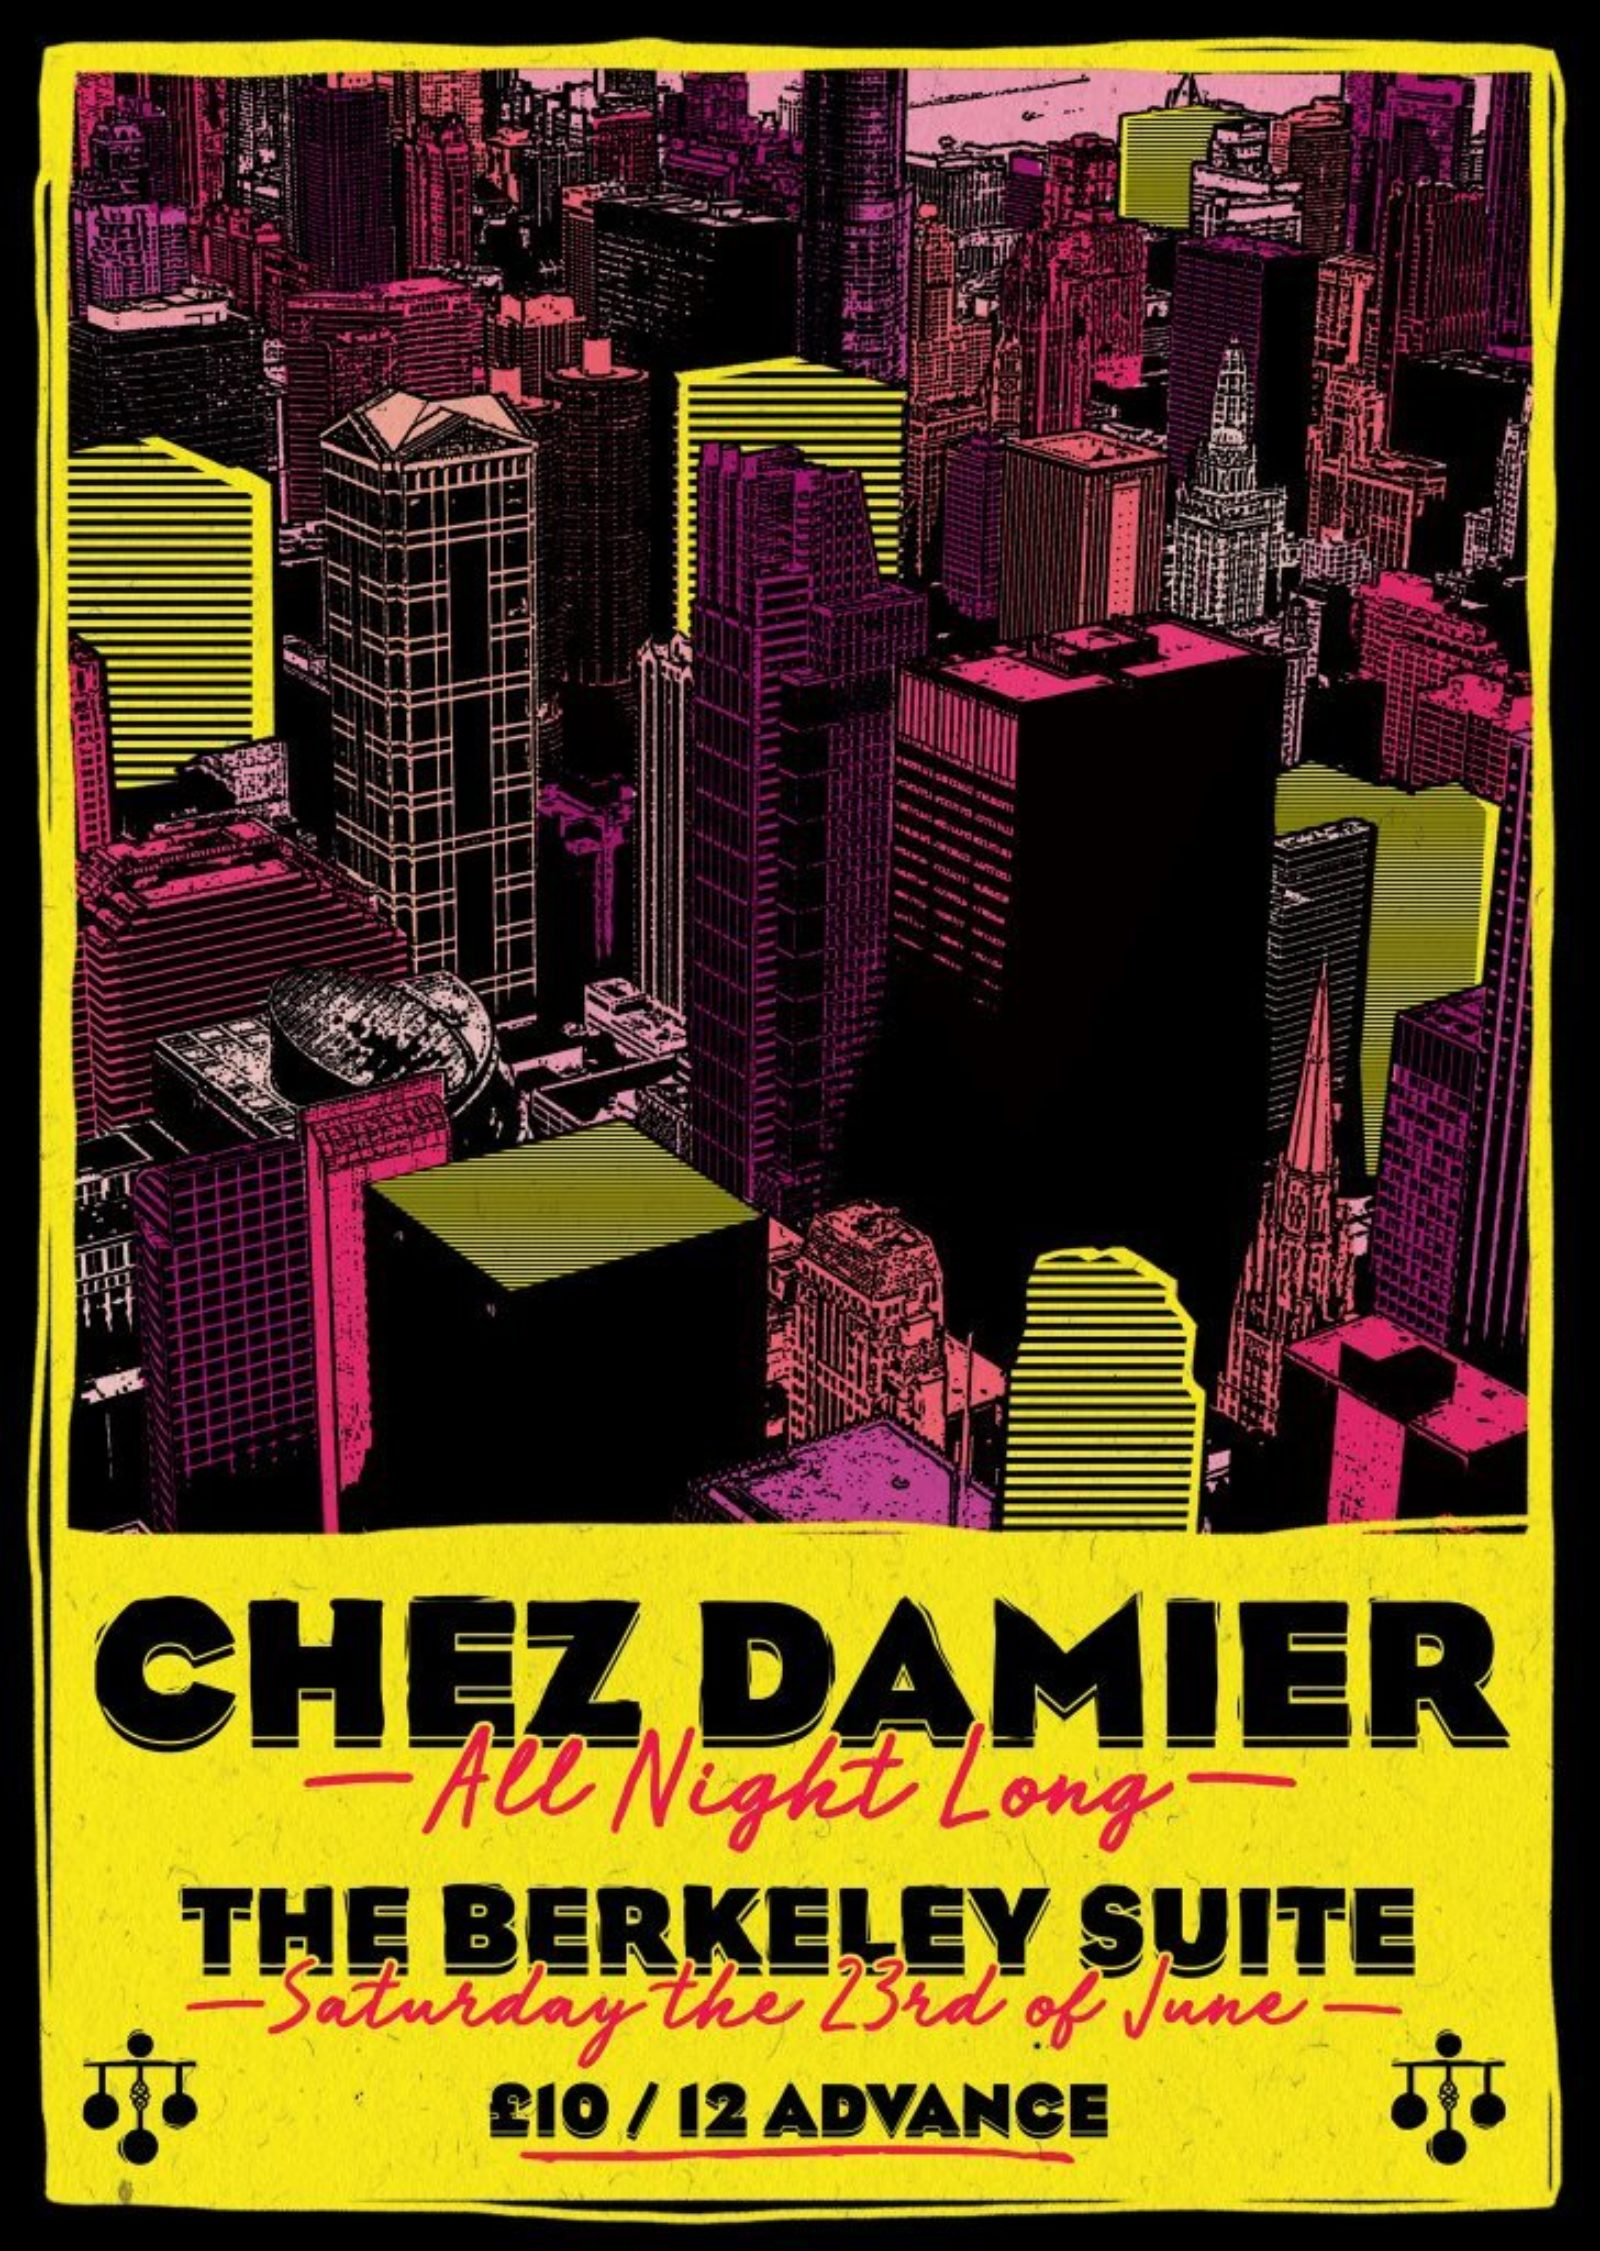 Chez Damier (All Night Long)